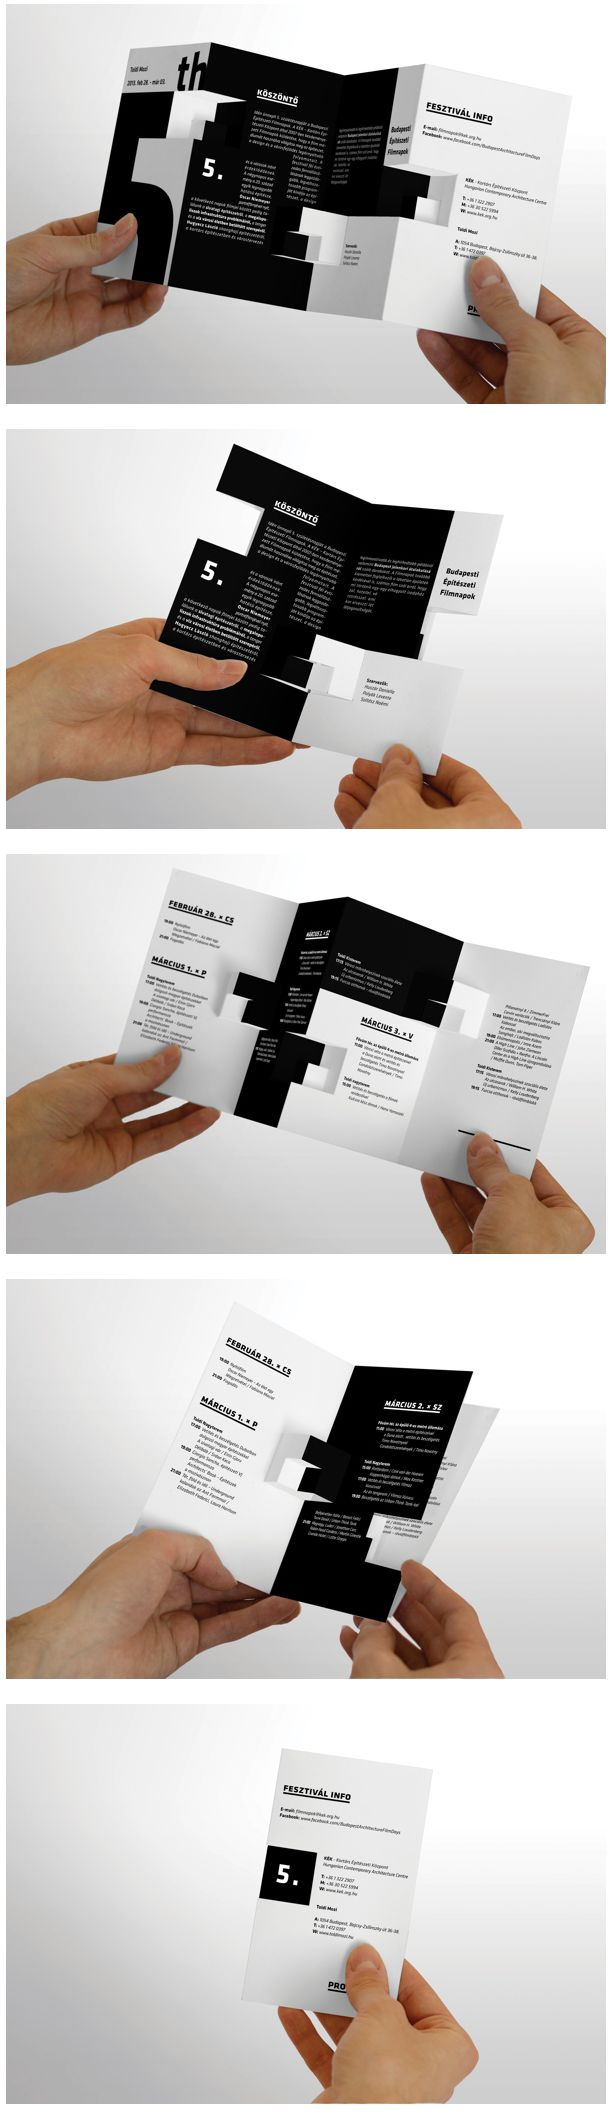 5. Budapest Architecture Film Festival Brochure on Behance apparently i like cool folds and die cuts